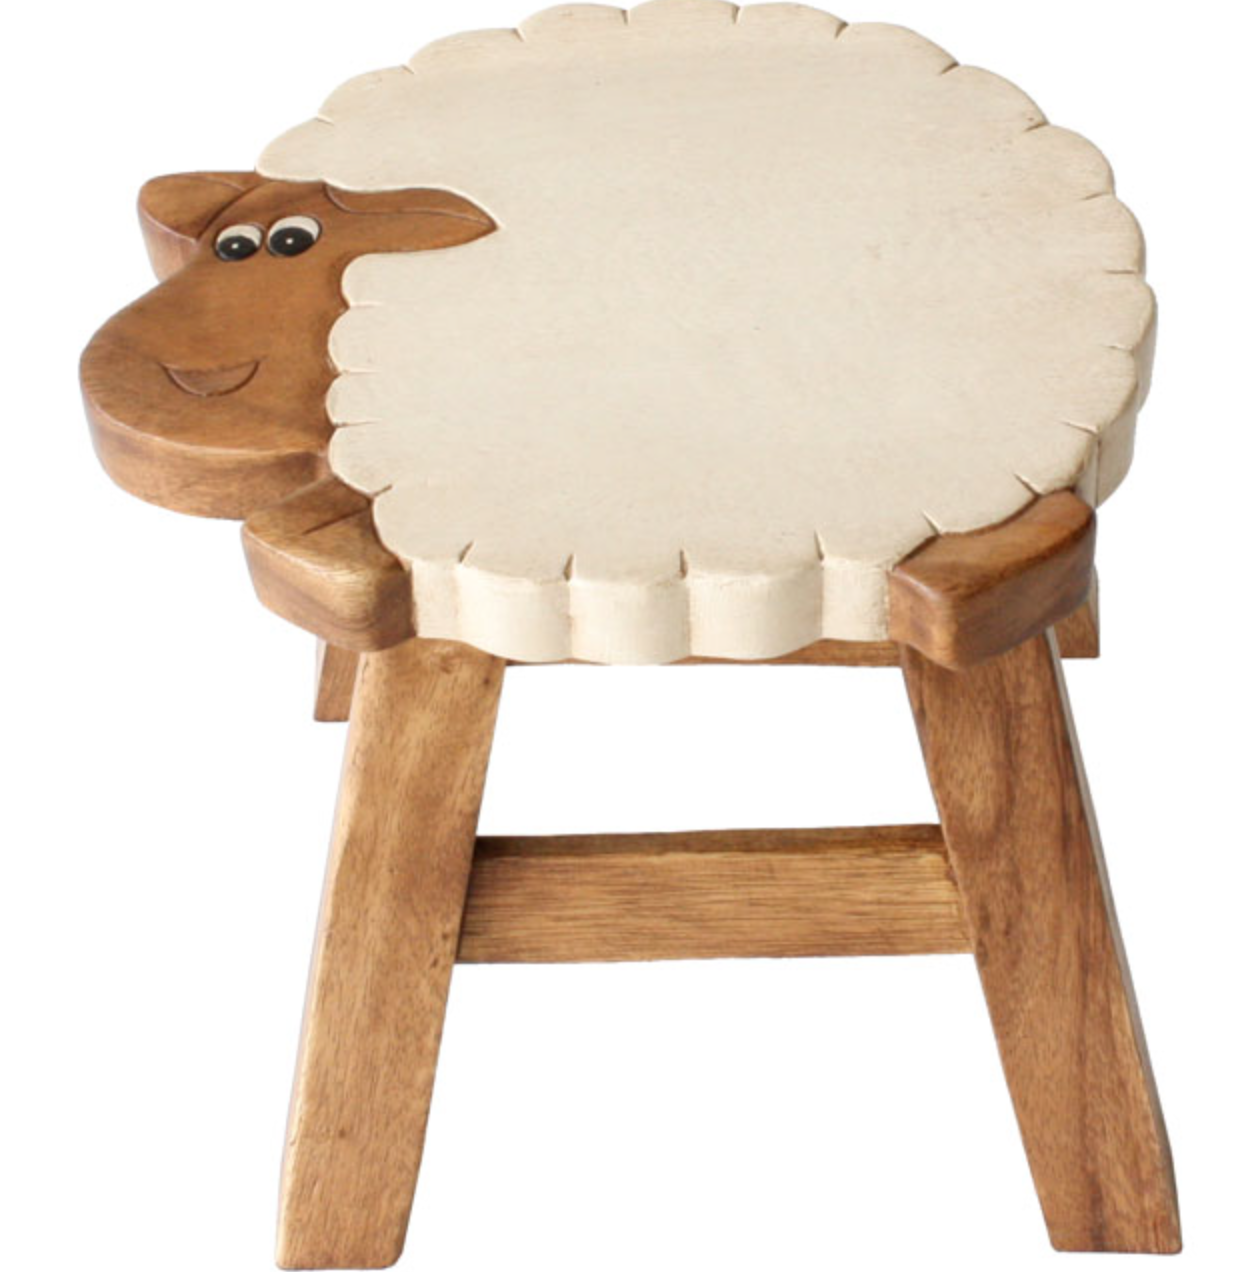 Childs Wooden Stool - Sheep  sc 1 st  Pinterest & Childs Wooden Stool - Sheep | Furniture | Pinterest | Wooden ... islam-shia.org